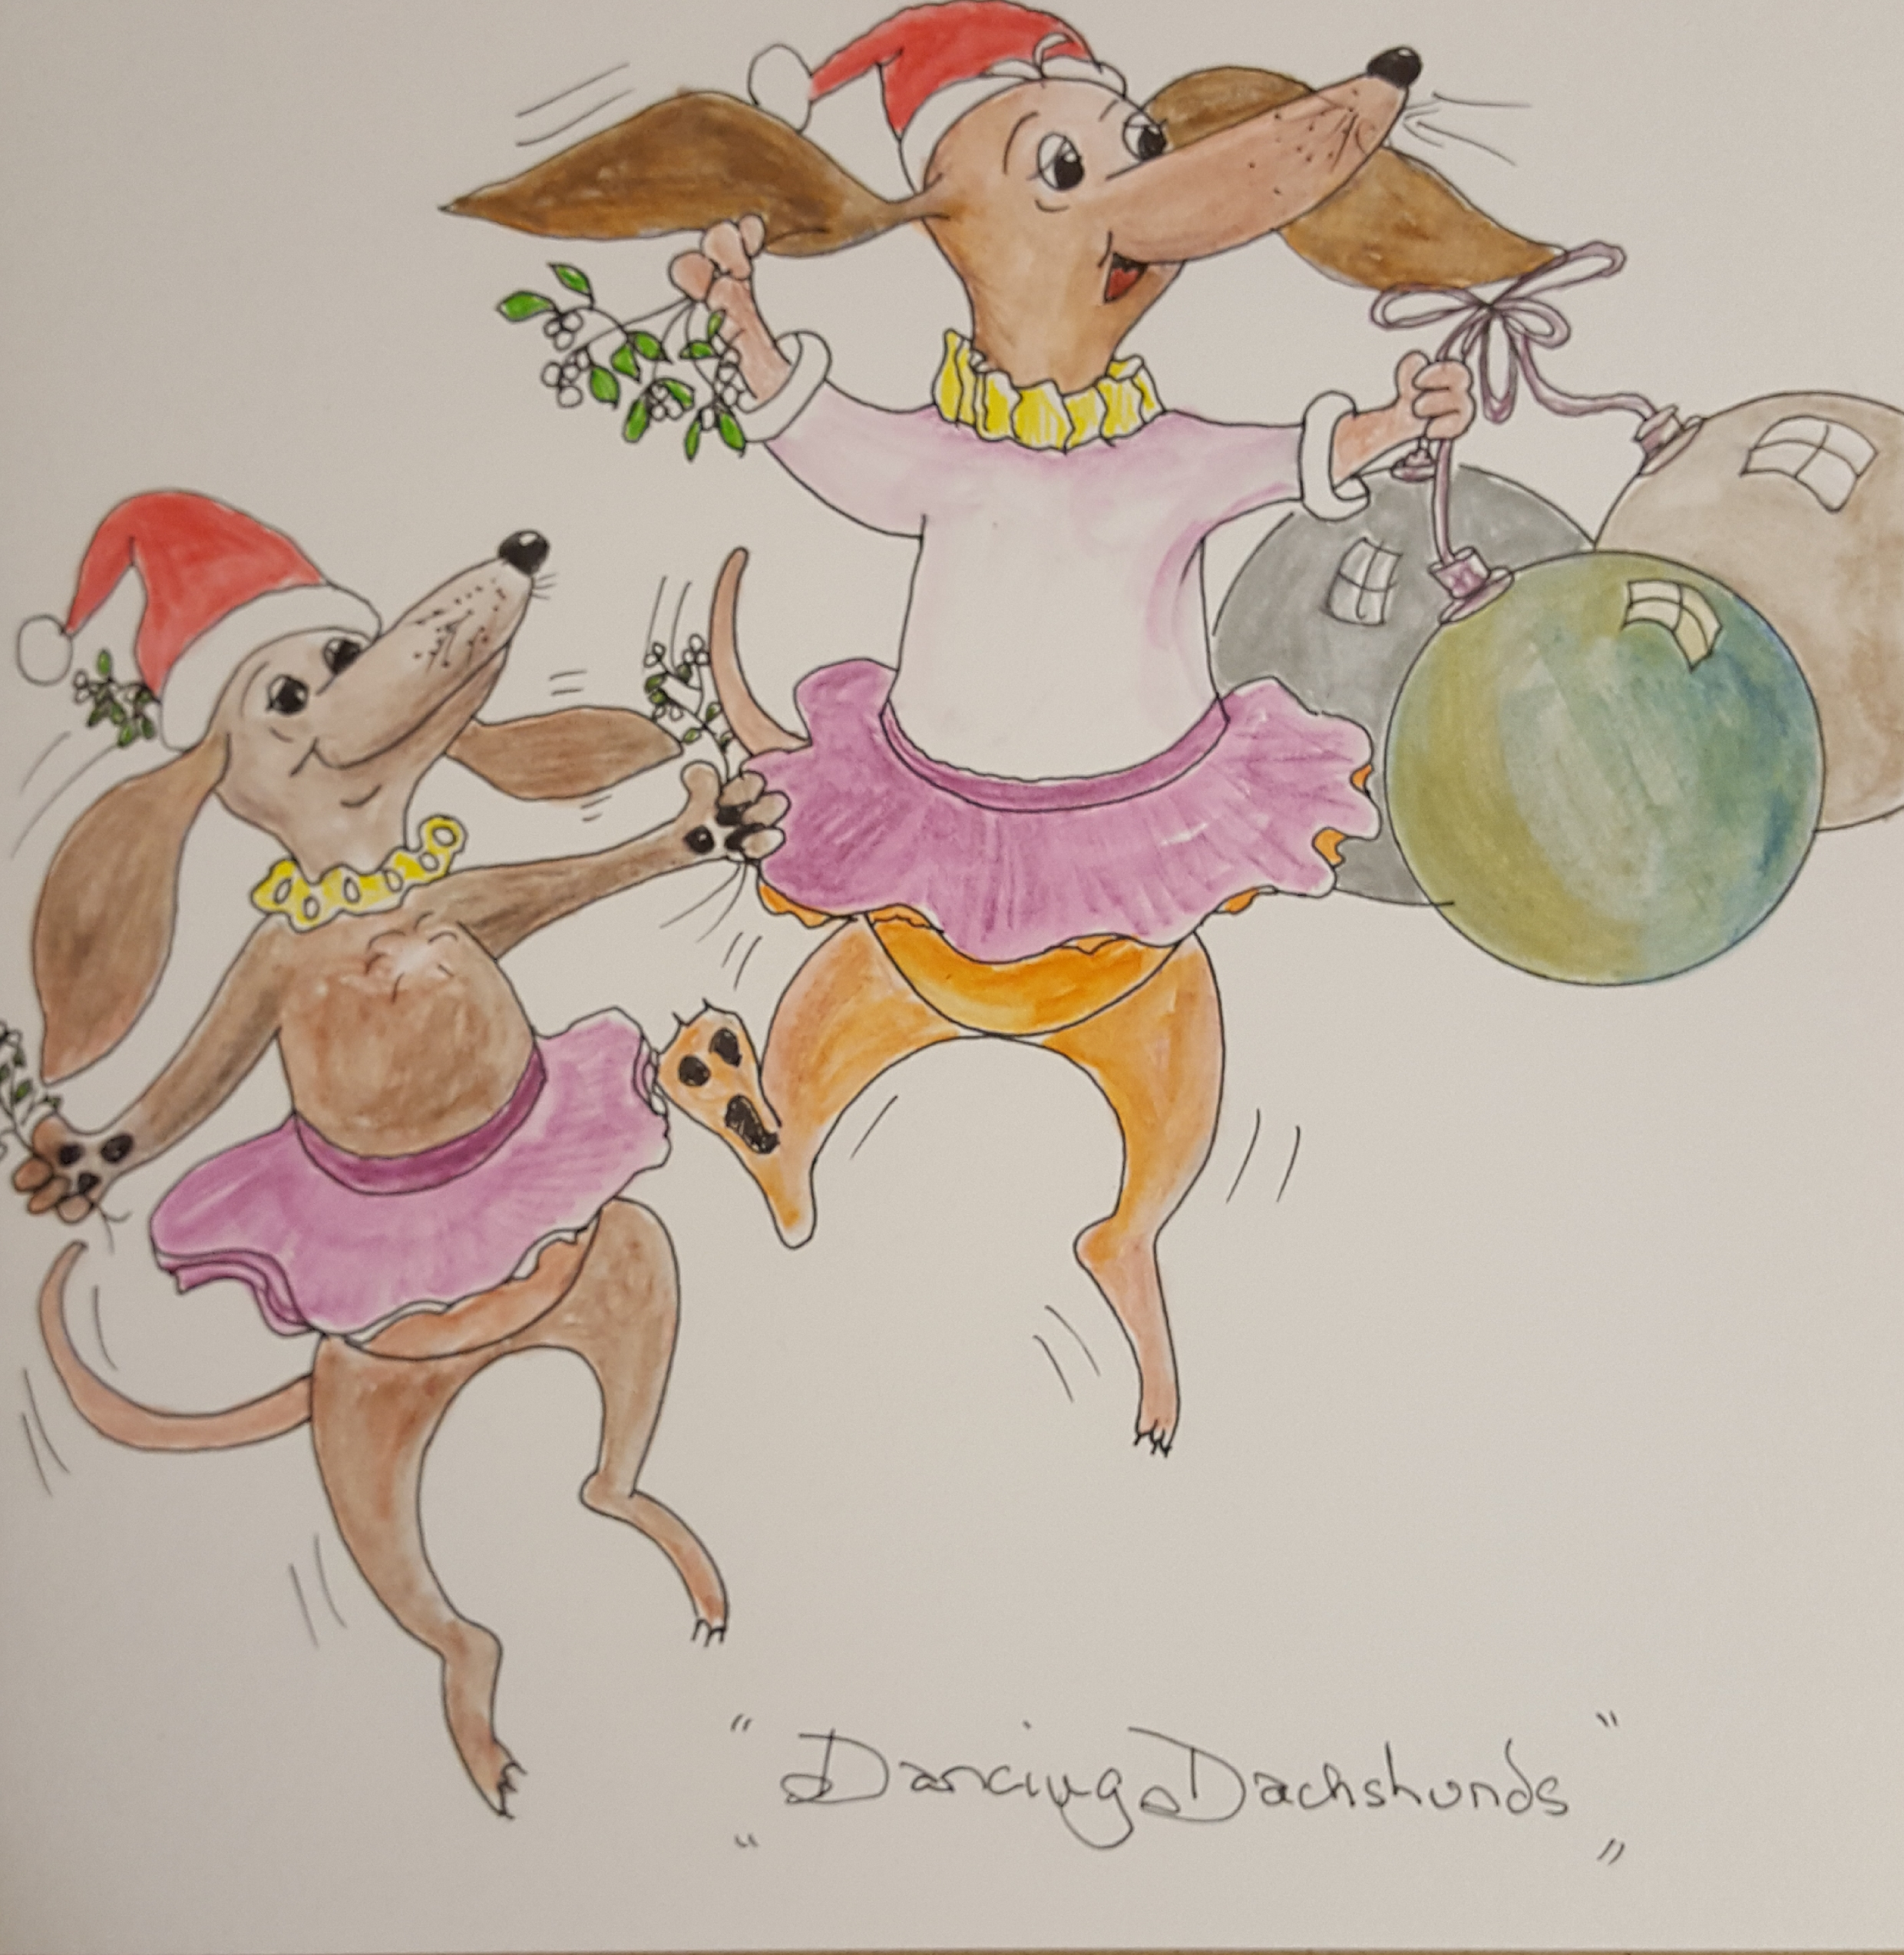 Dancing Dachshunds Sarahs Christmas card